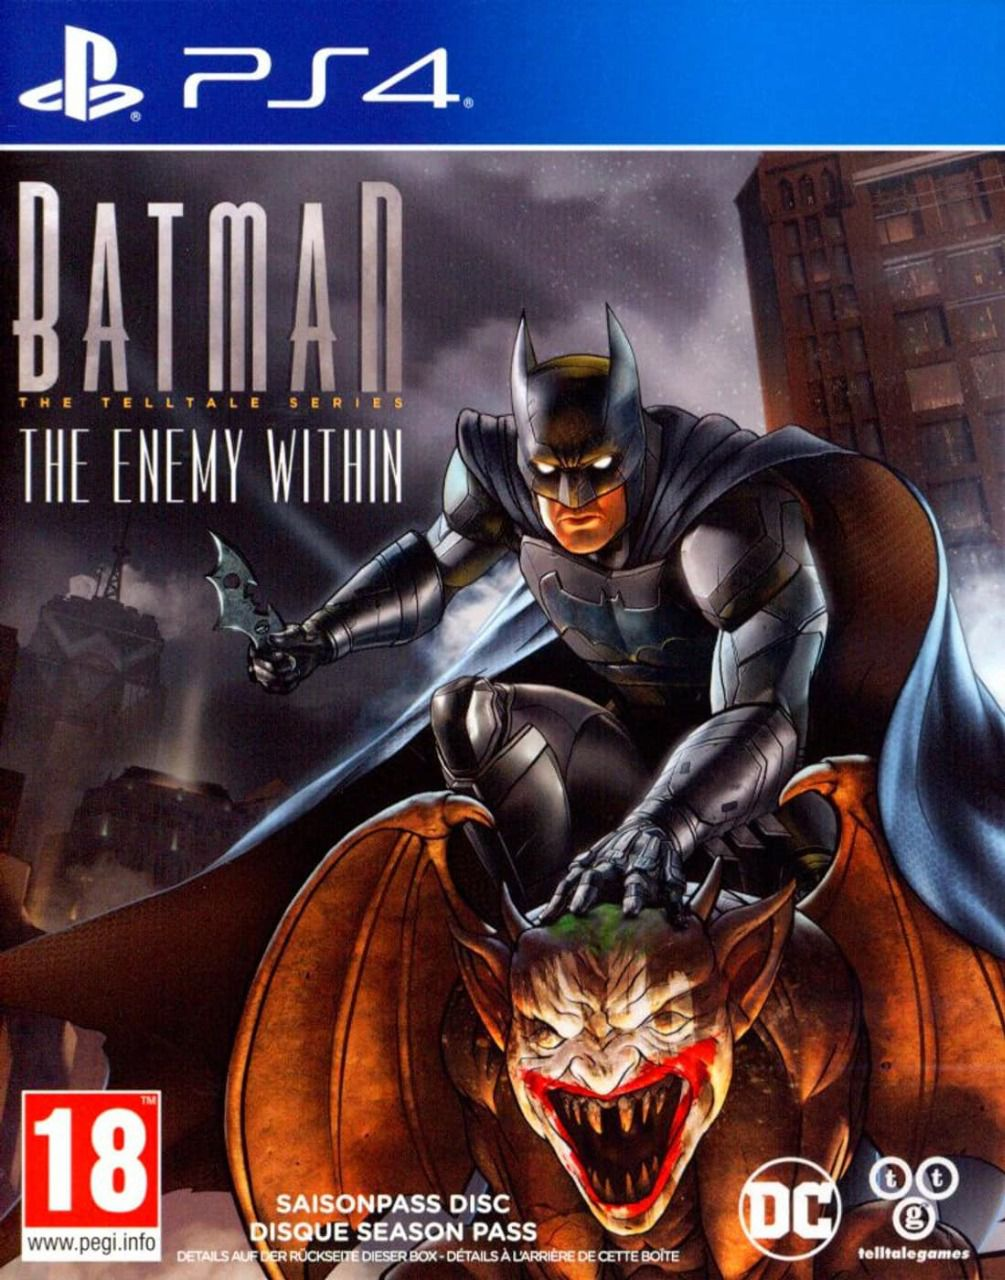 Jeu PS4 Batman the ennemy within - telltale serie (occasion)